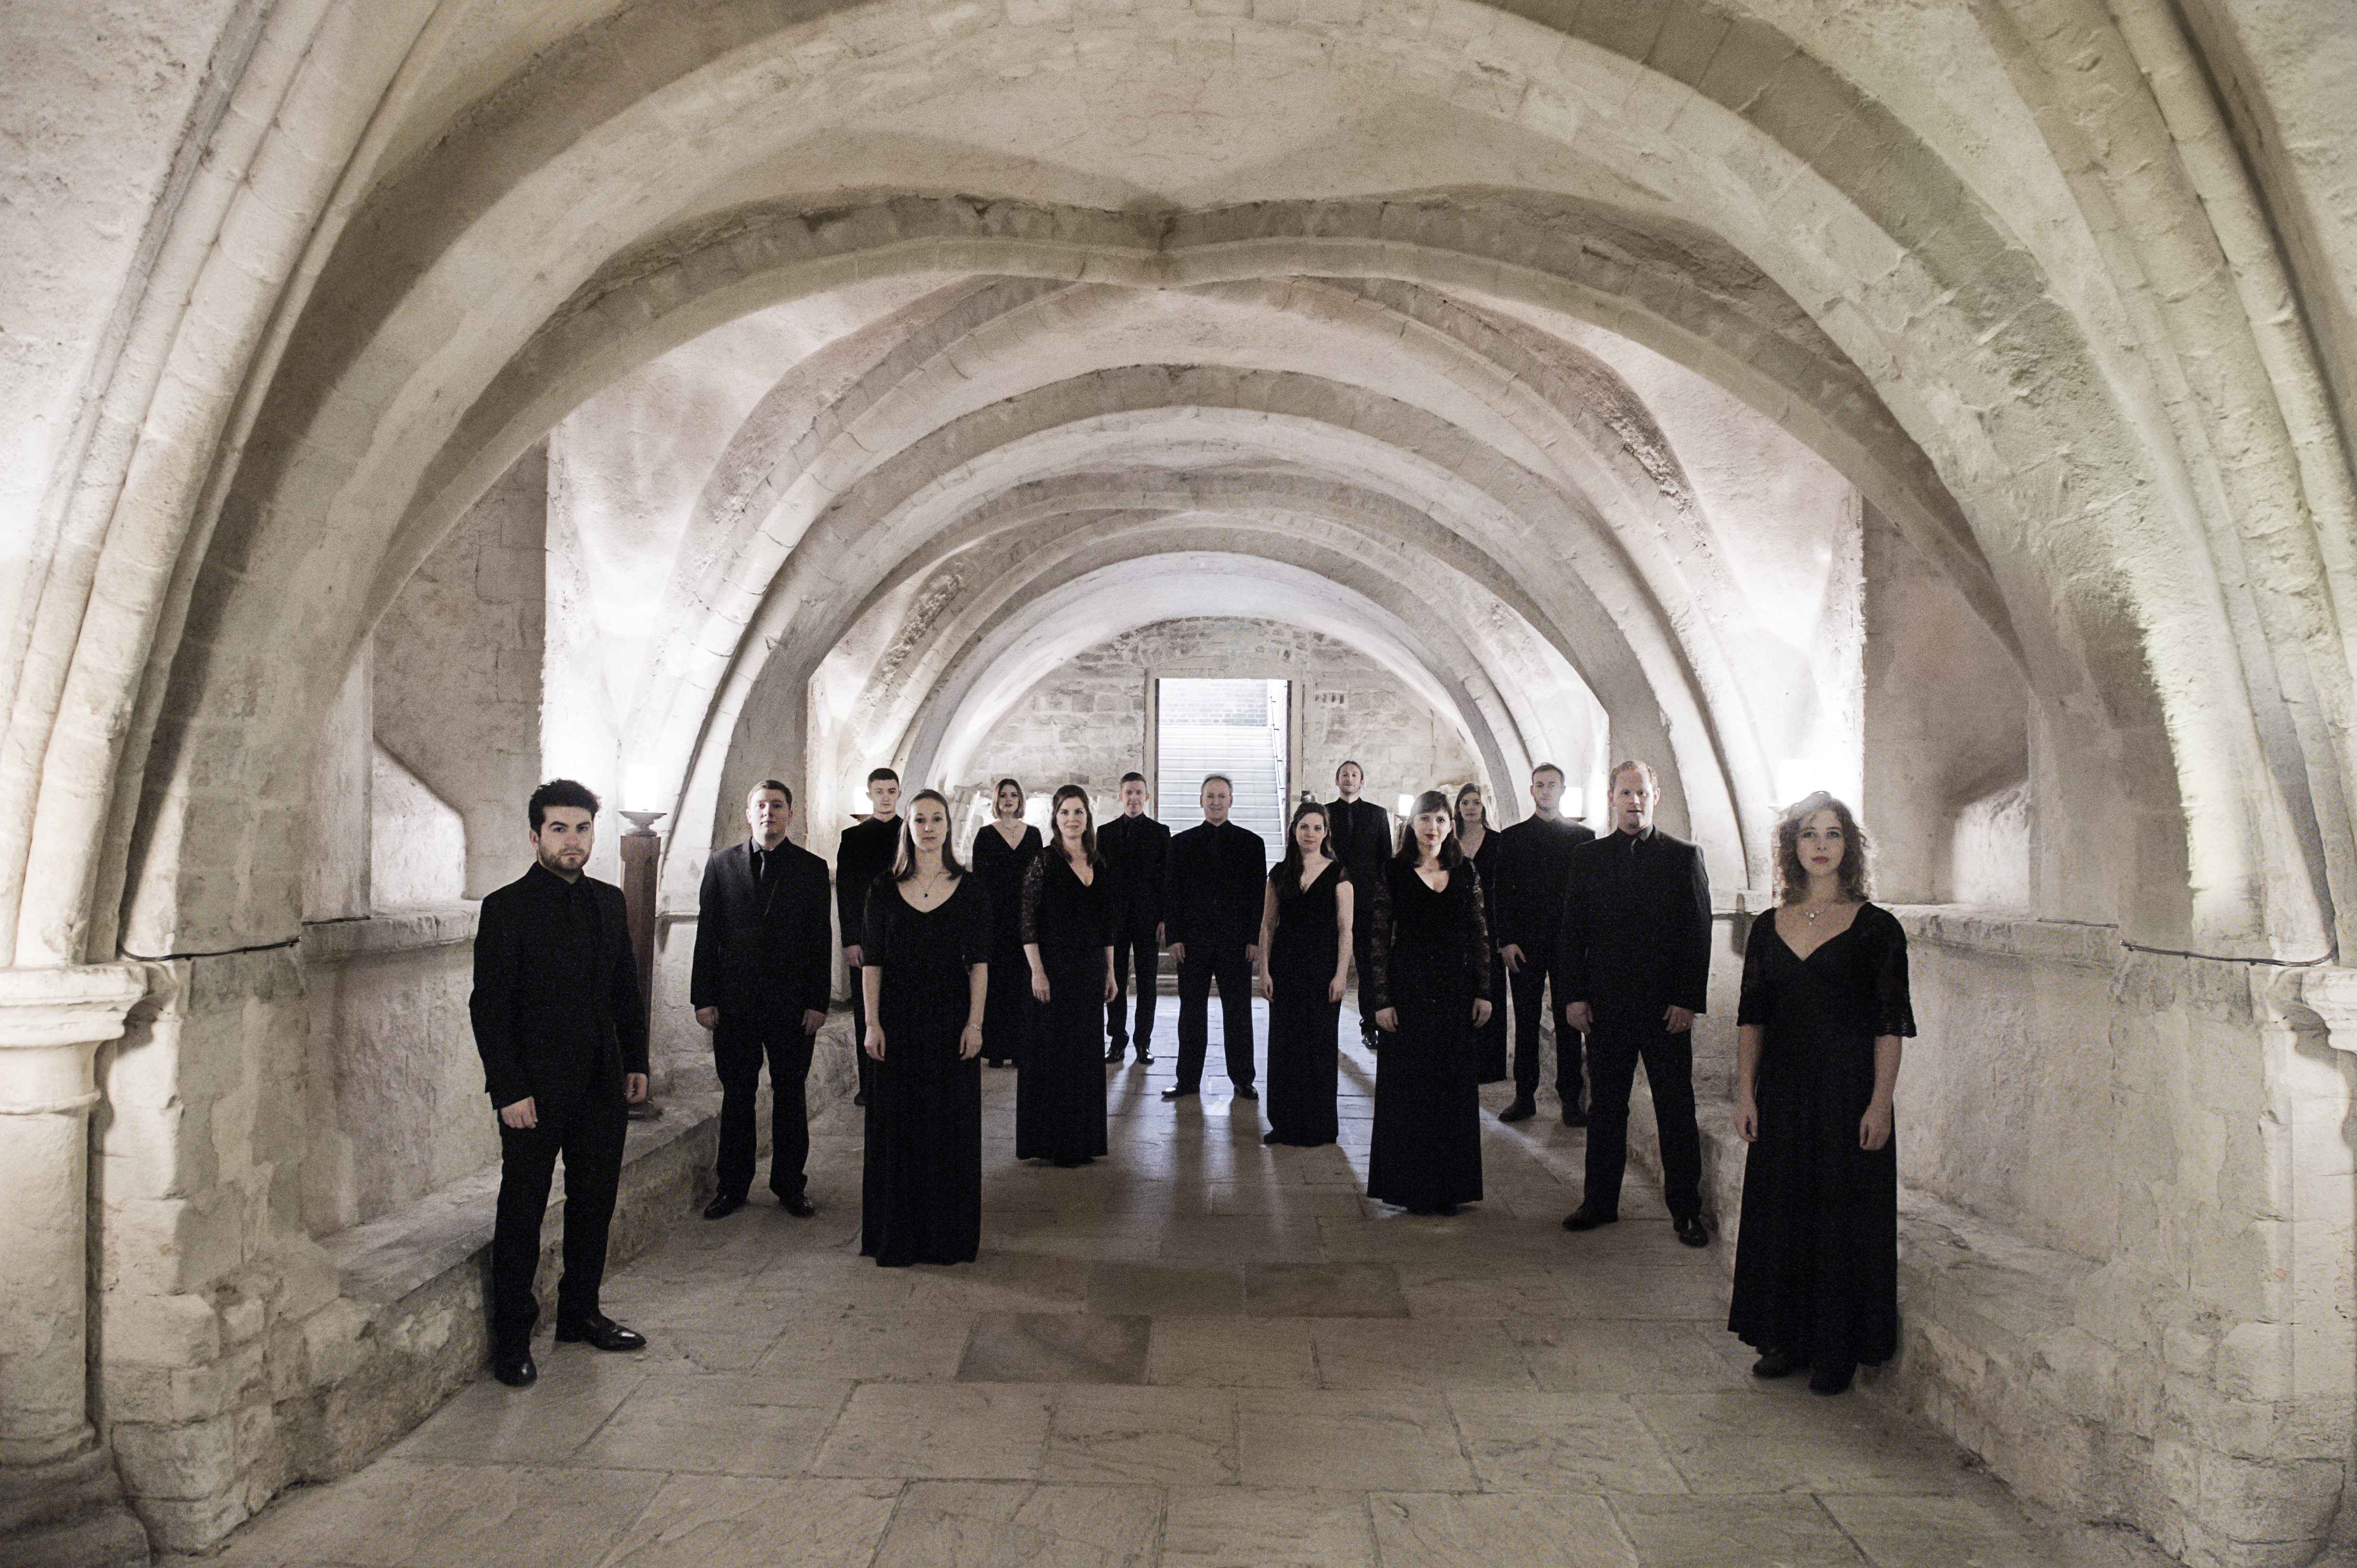 The members of the choir Tenebrae wearing black stand in a brightly lit stone vaulted hallway